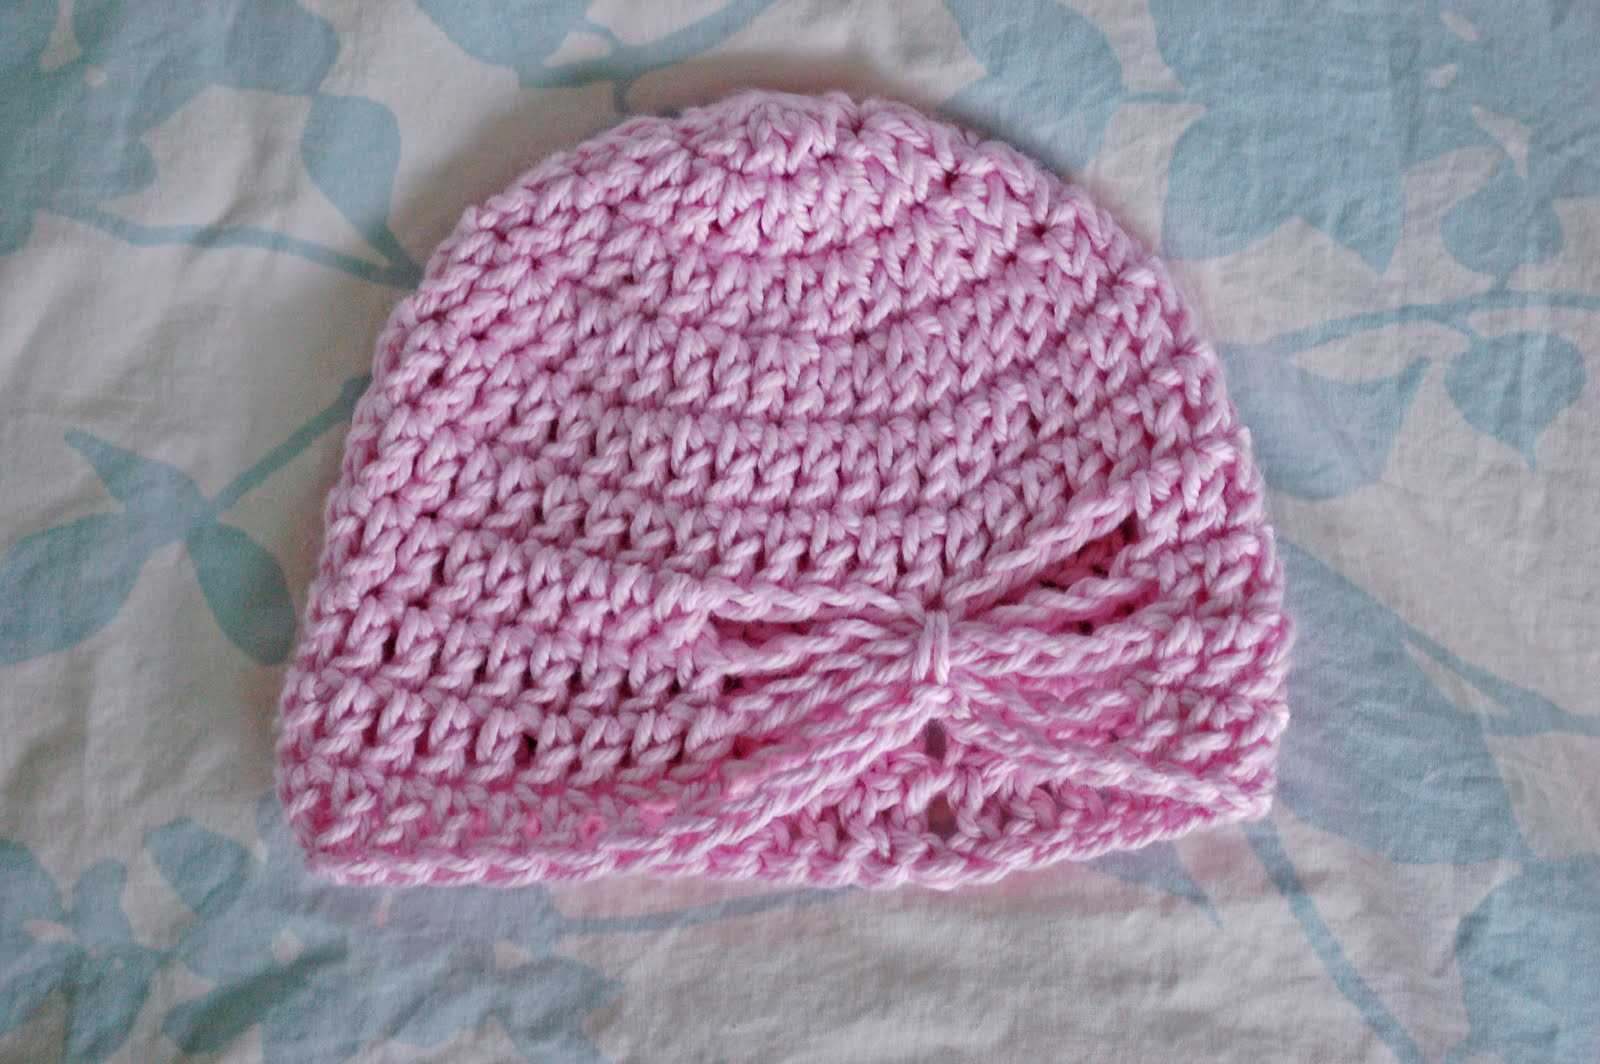 New Free Pattern for A Worsted Yarn Crochet A Hat – Easy Free Crochet Infant Hat Patterns Of Luxury Baby Hat Crochet Pattern Modern Homemakers Free Crochet Infant Hat Patterns